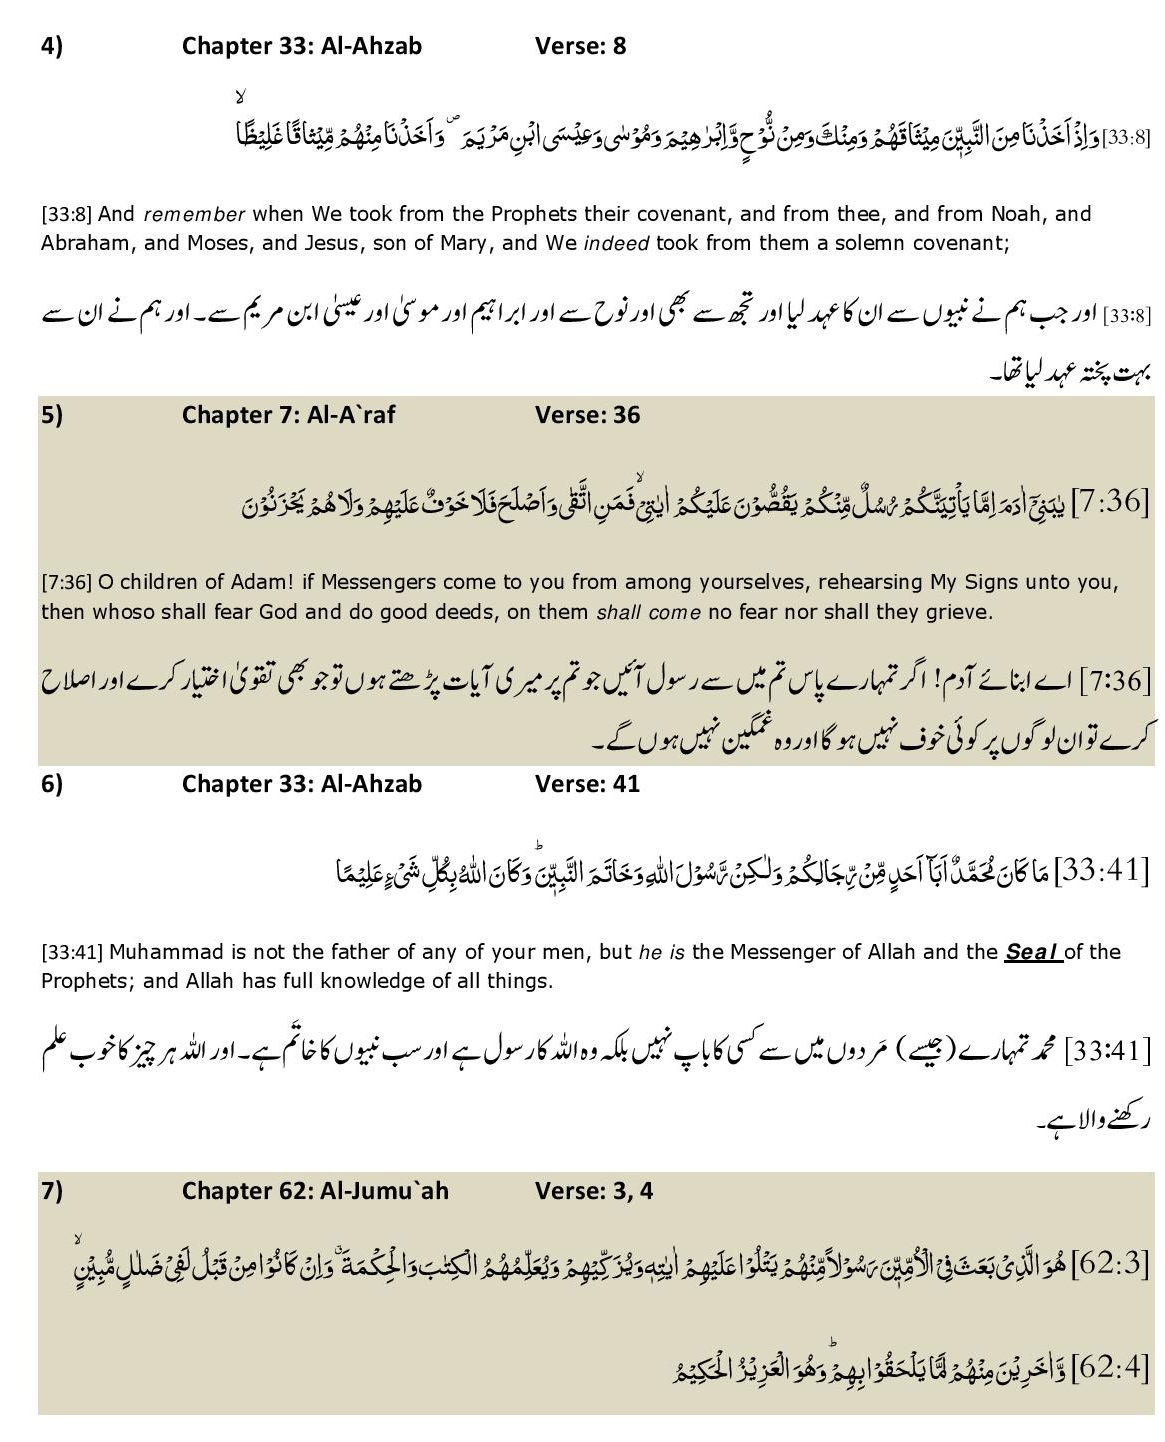 Continuation of Prophethood promised in the Holy Quran